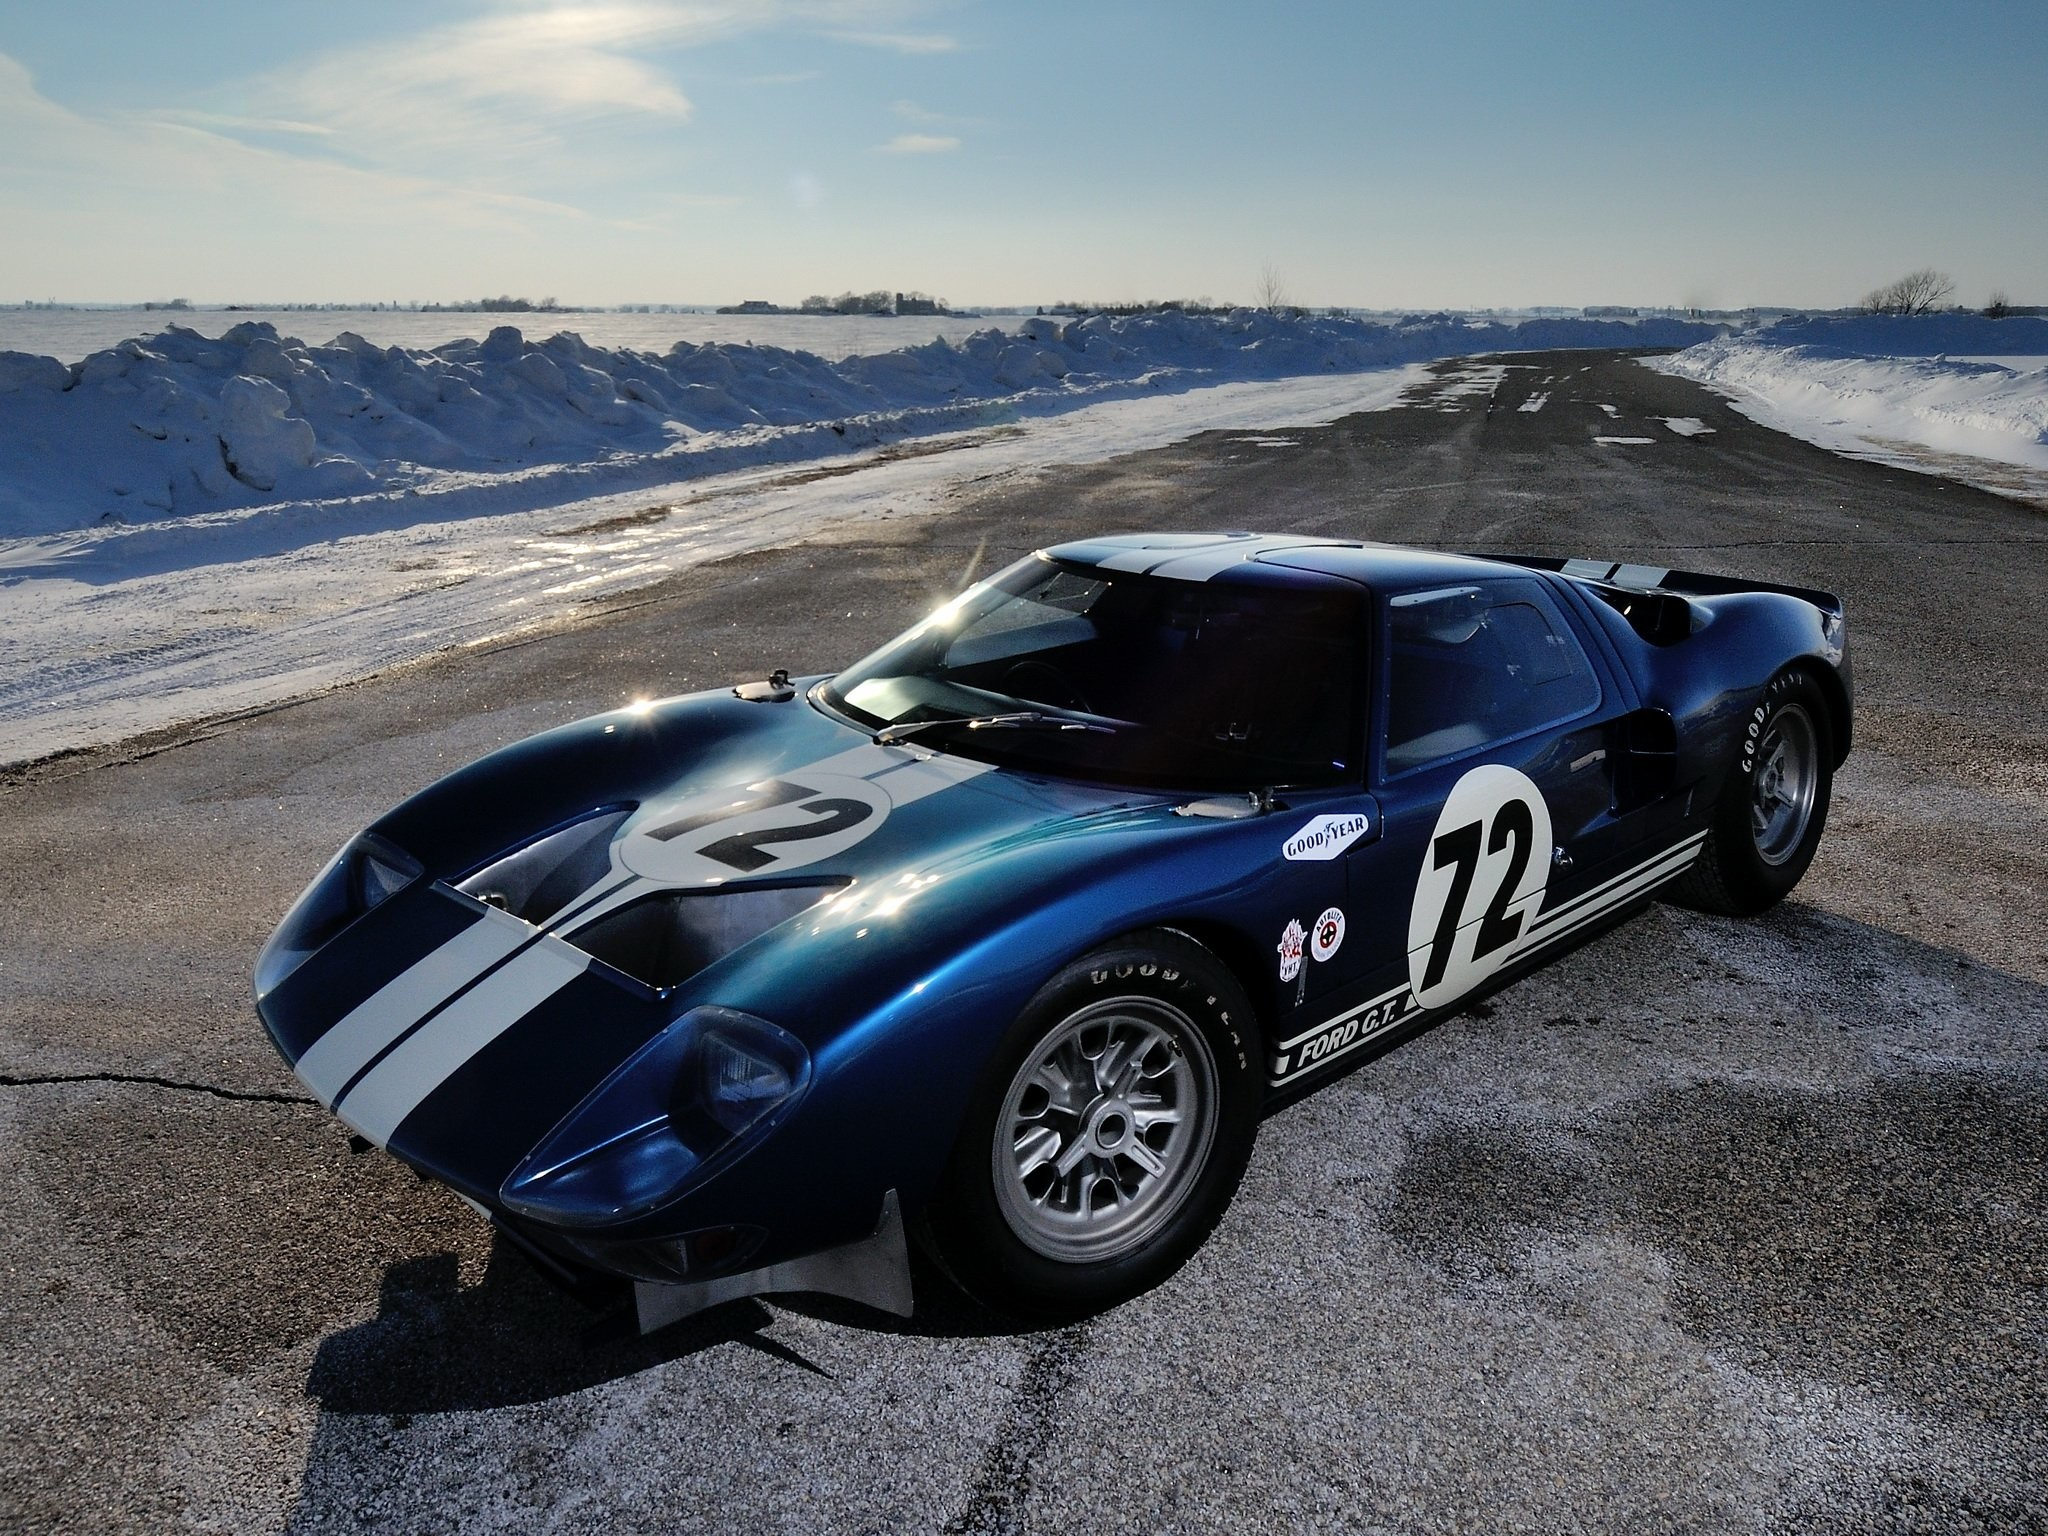 Res: 2048x1536, Ford Gt40 Wallpaper Hd Resolution